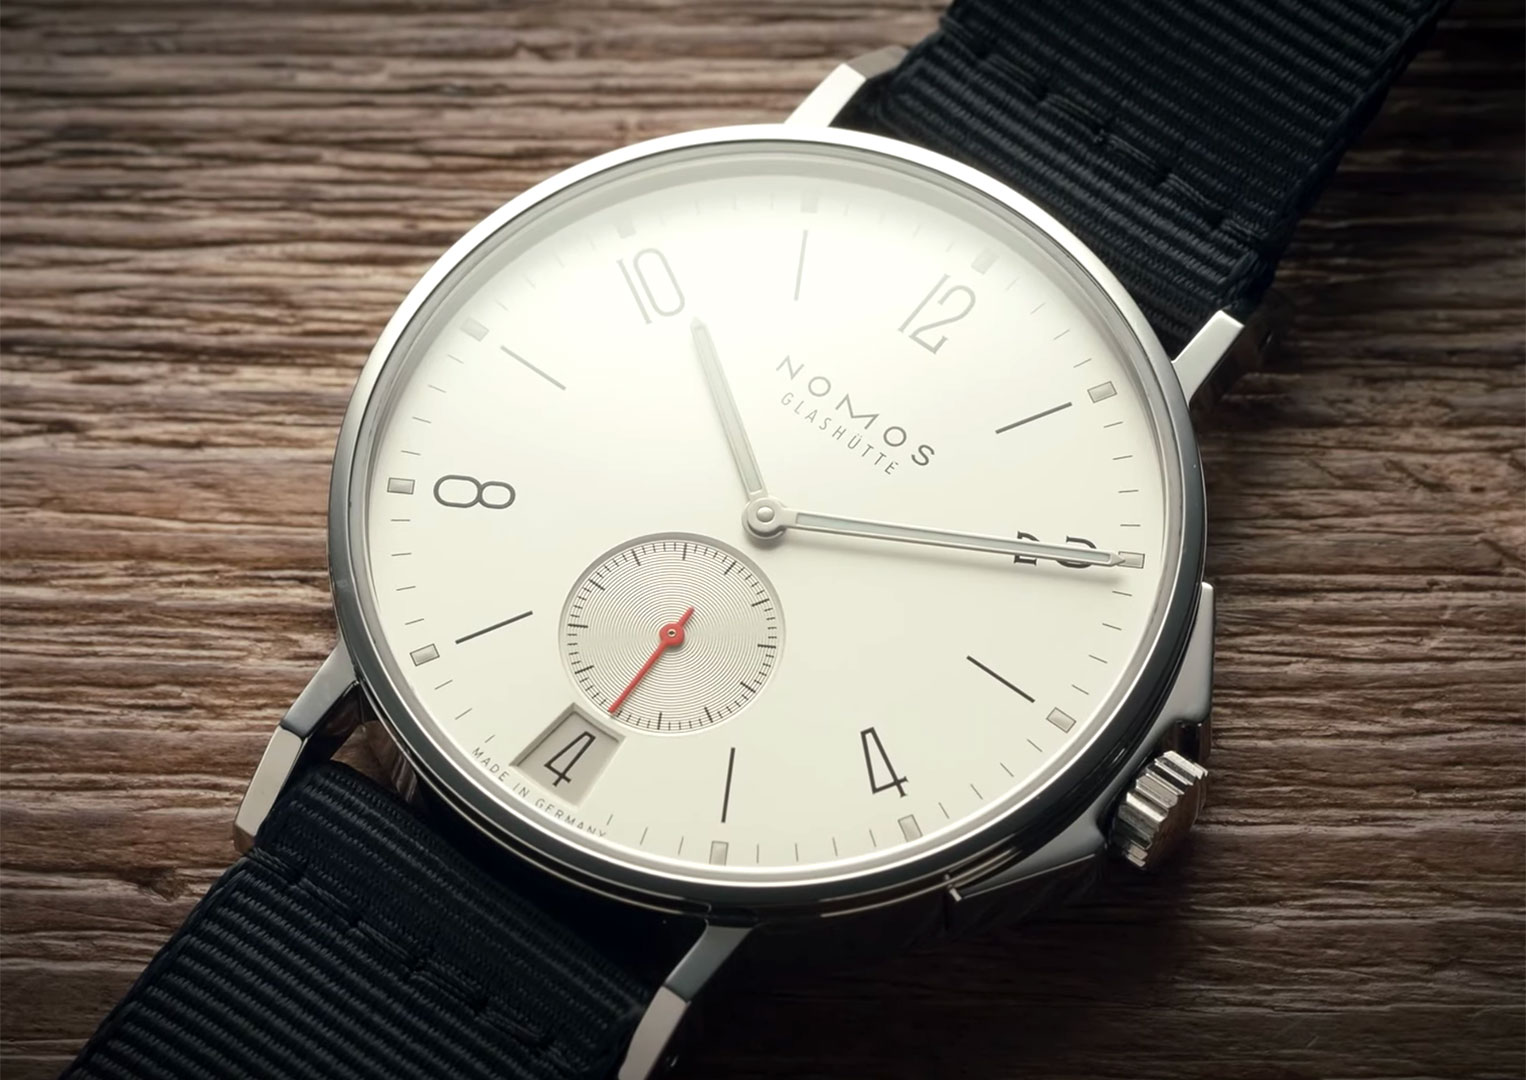 Just like A. Lange & Söhne and Glashütte Original, Nomos is a brand from a small town in Germany called Glashütte